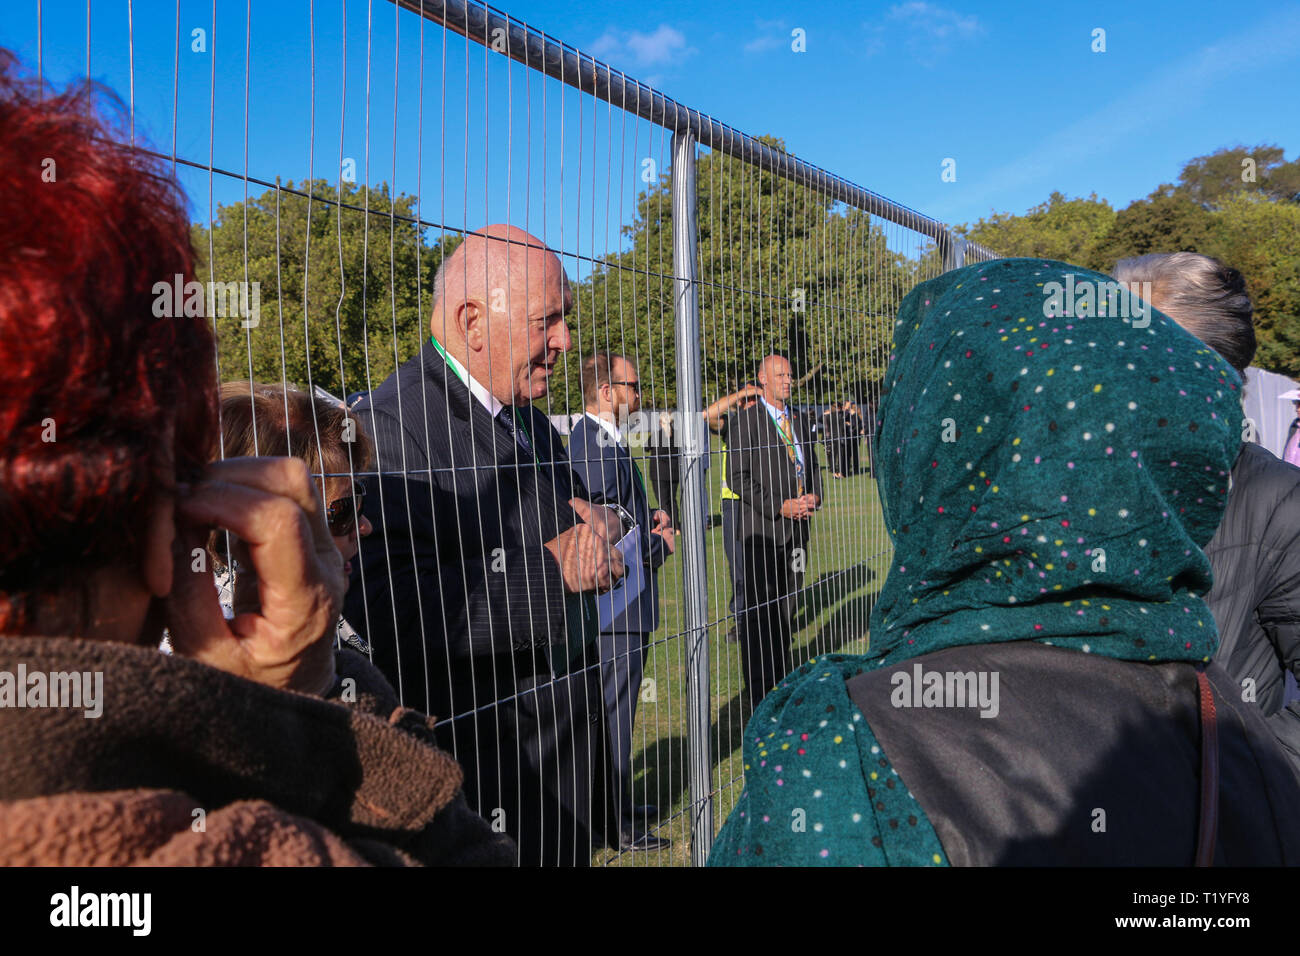 Christchurch, New Zealand. 29th Mar 2019. Australian Governor General, Perter Cosgrove, and his wife, Lynne Cosgrove, came to meet the public and to give his condolences. Around 50 people has been reportedly killed in the Christchurch mosques terrorist attack shooting targeting the Masjid Al Noor Mosque and the Linwood Mosque. Credit: SOPA Images Limited/Alamy Live News - Stock Image